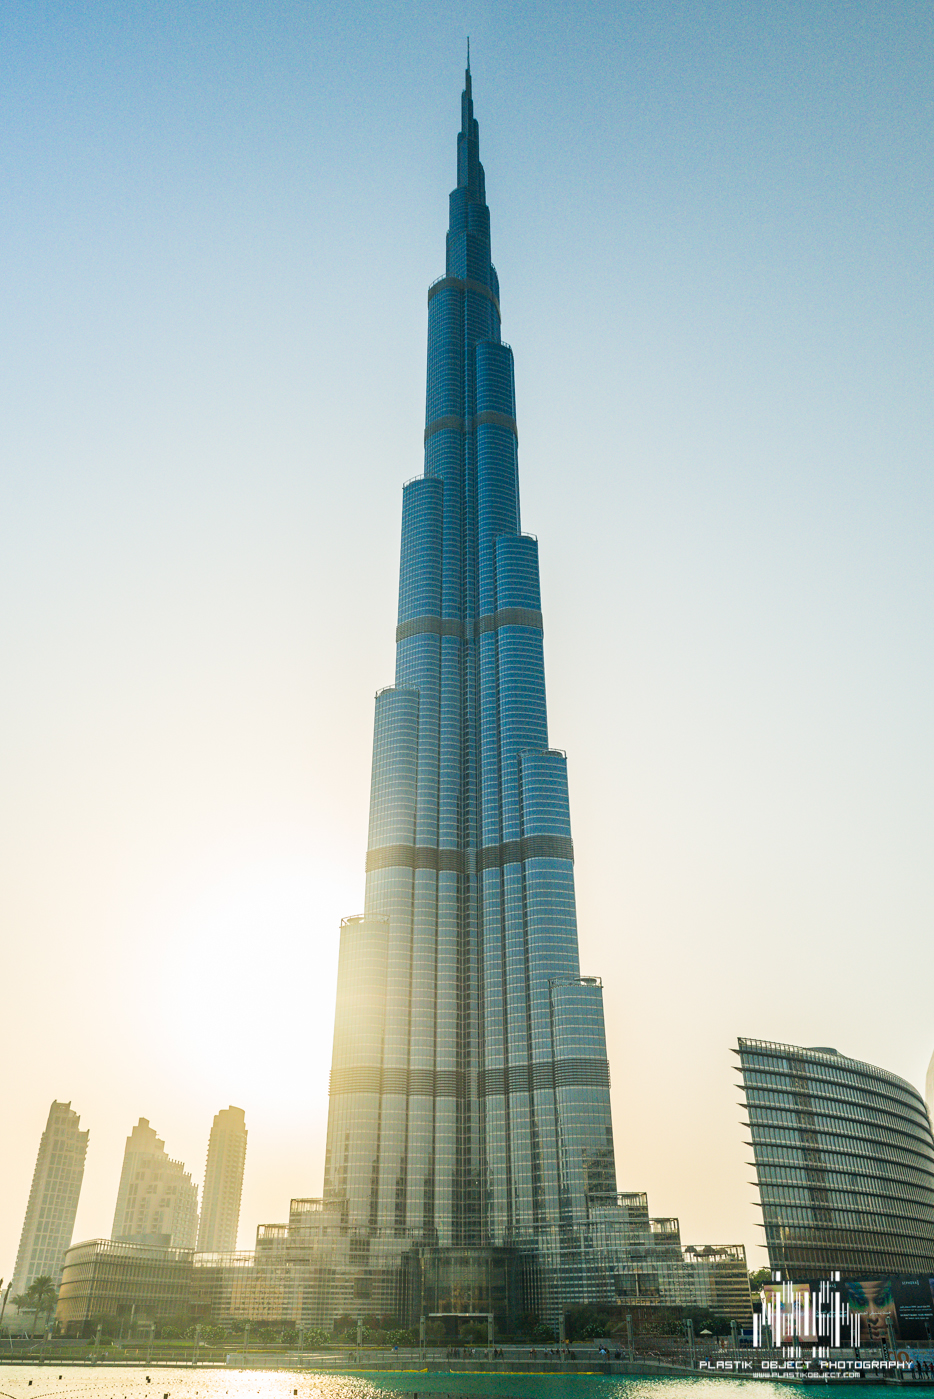 The Burj Khalifa, the tallest building in the world.